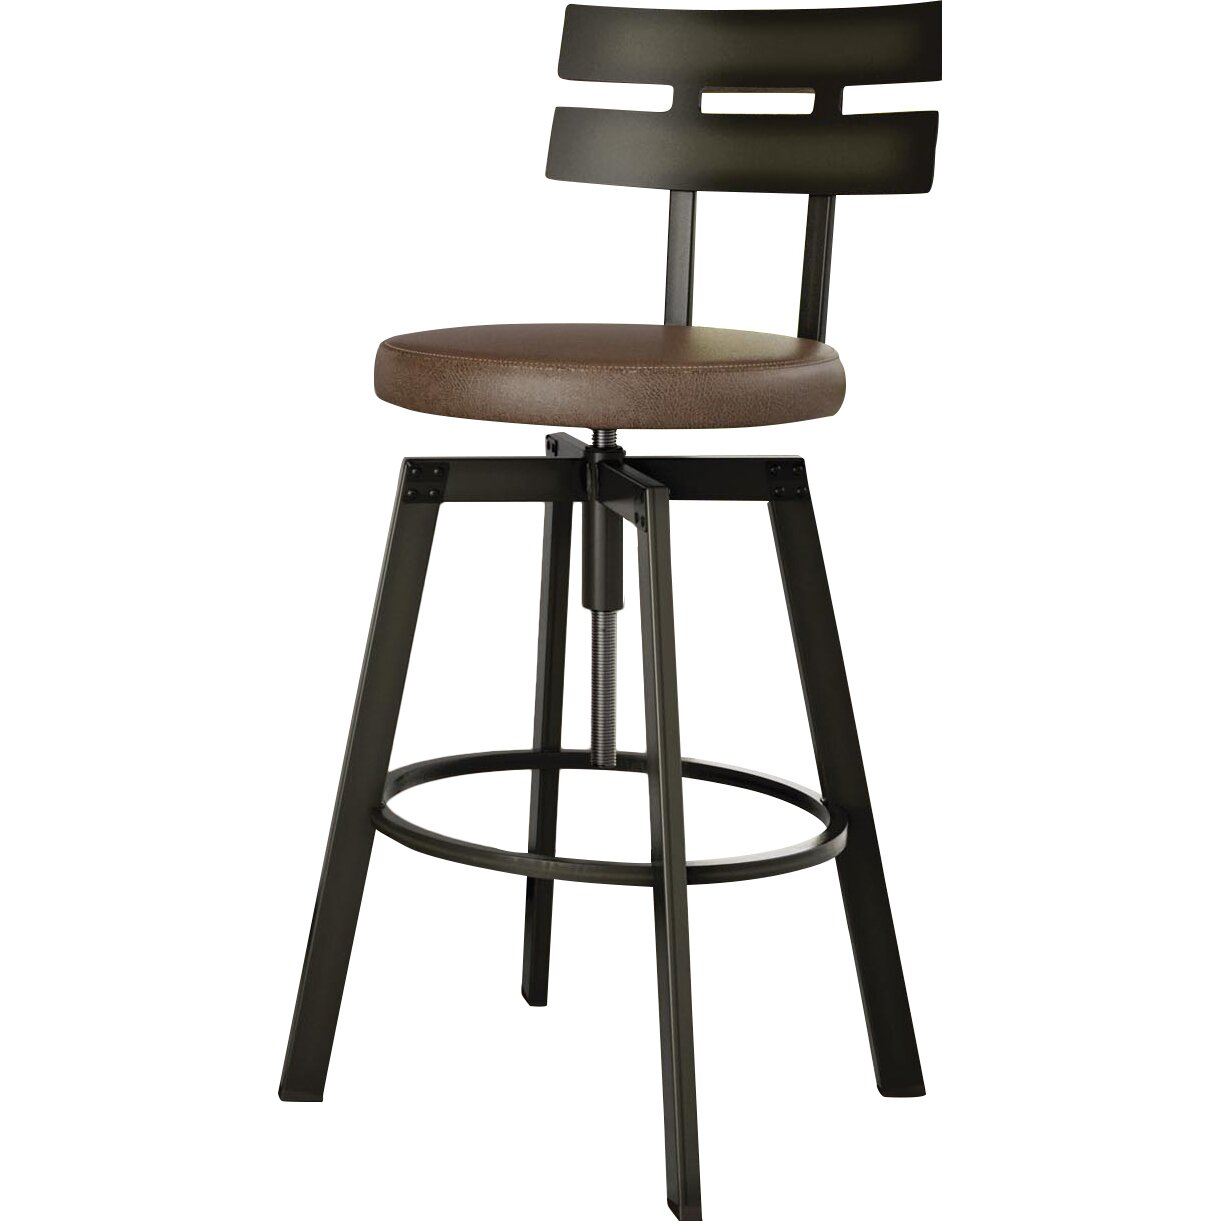 design berrycone adjustable height bar stool reviews wayfair